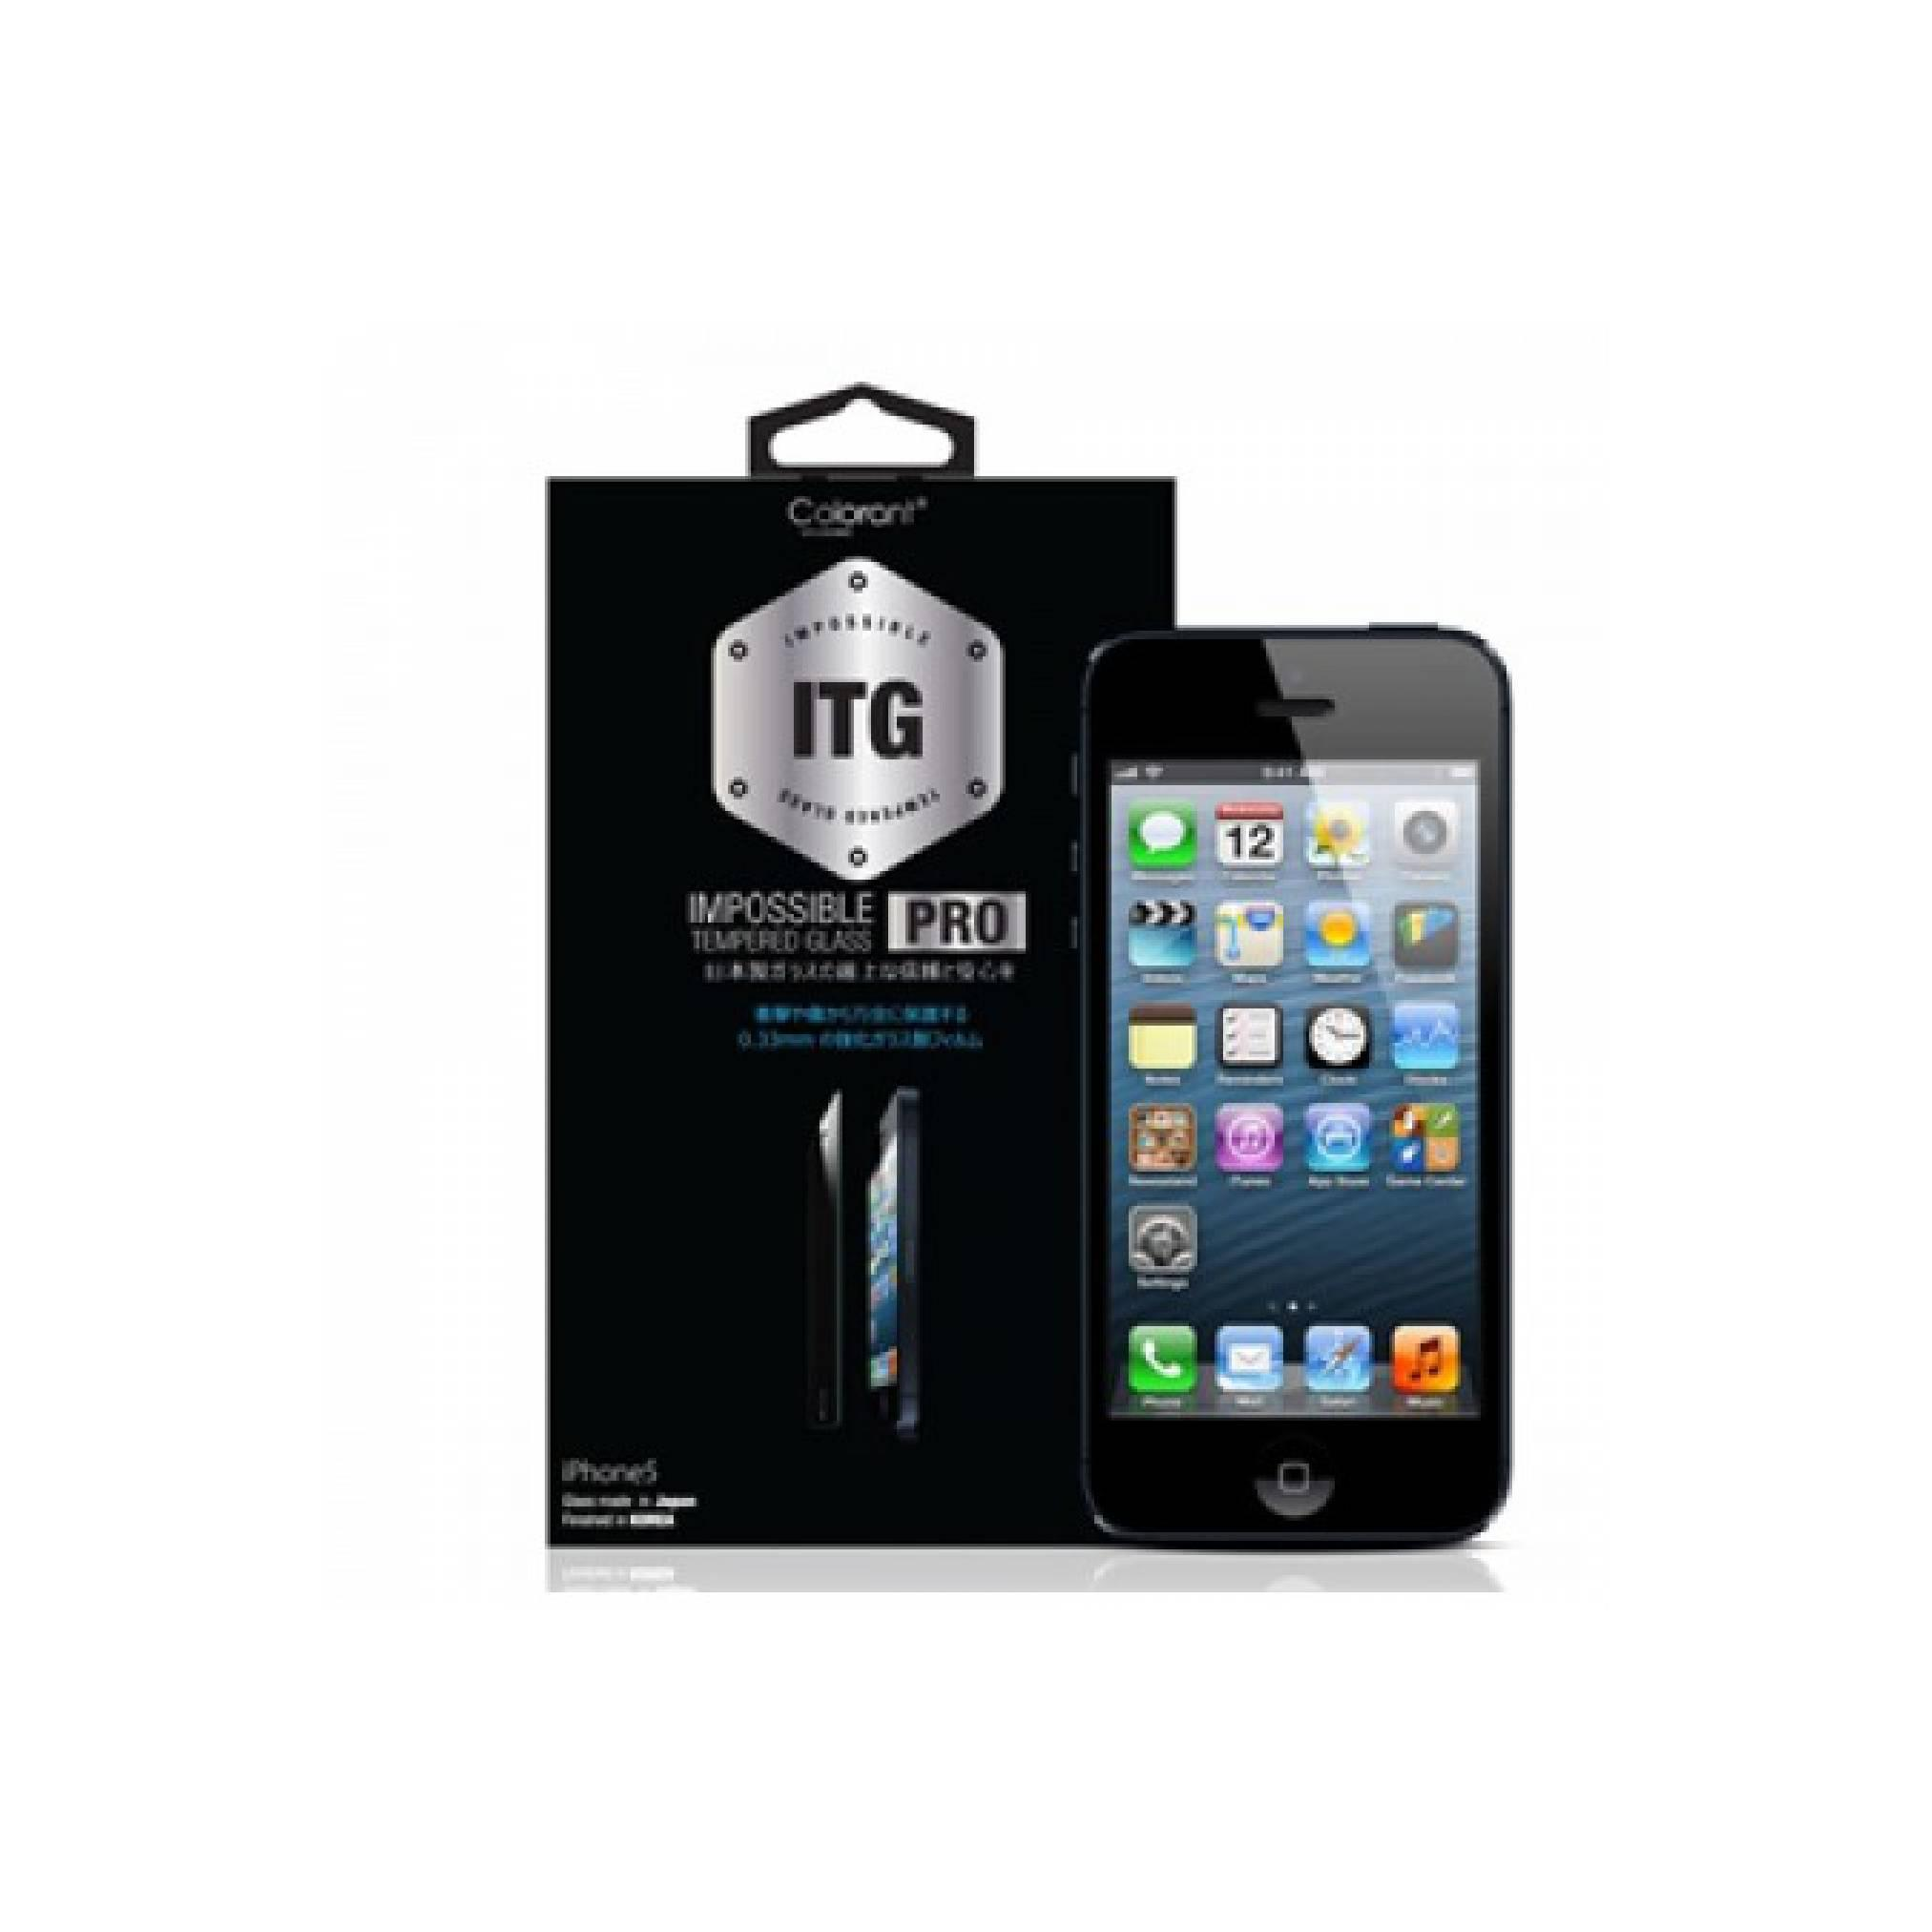 Colorant iPhone 5S USG ITG Pro - Glass Clear [Packing Rusak]